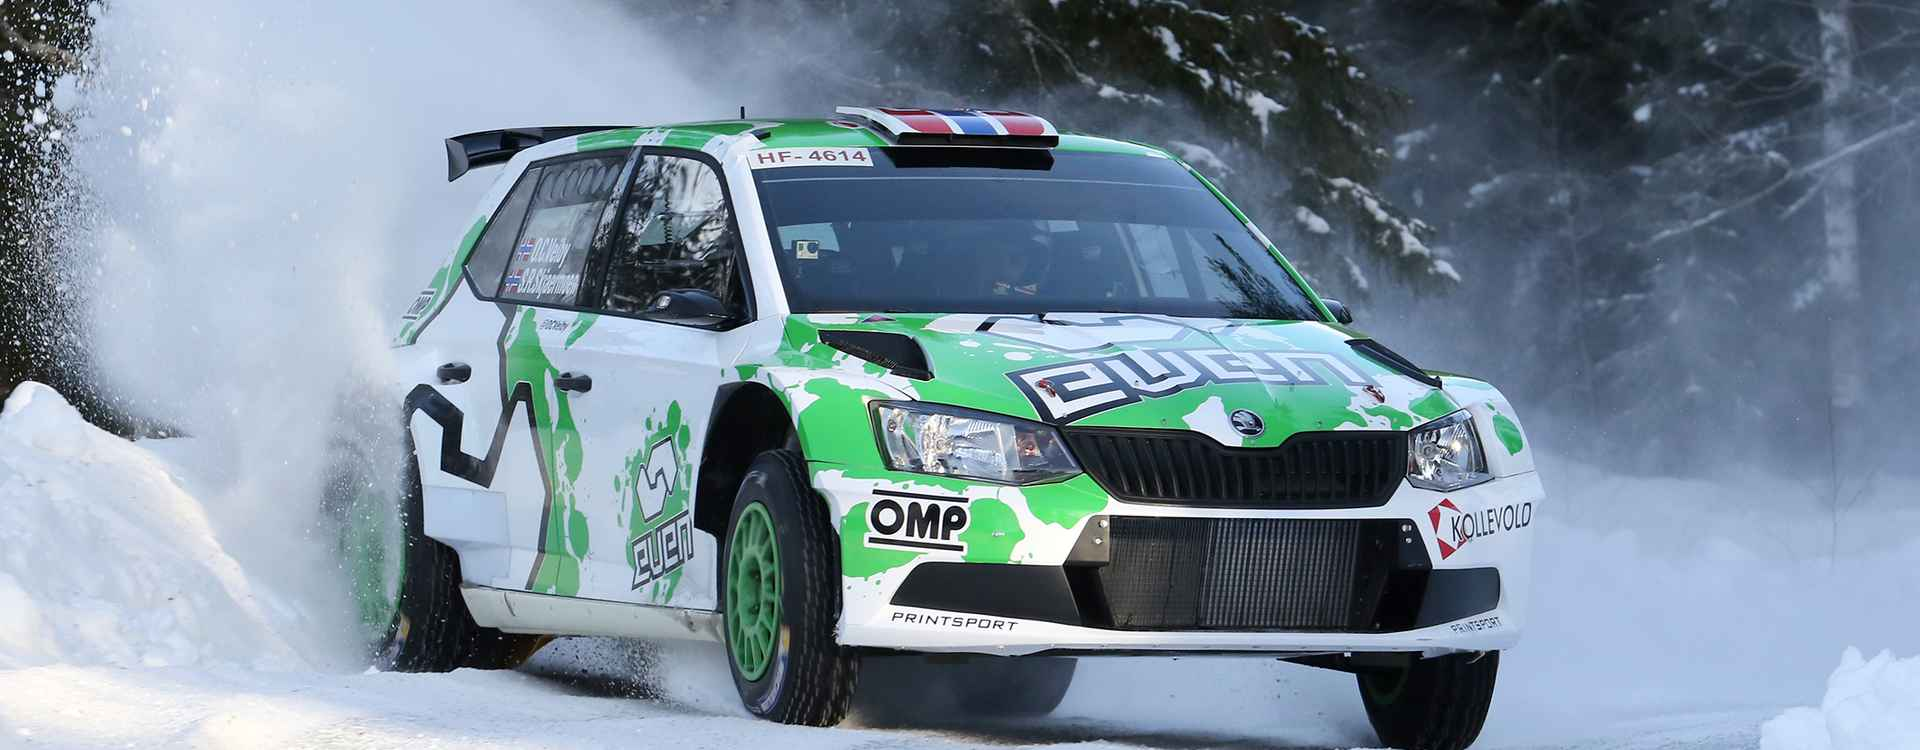 ŠKODA Customer Teams are ready for tough weekend in Sweden